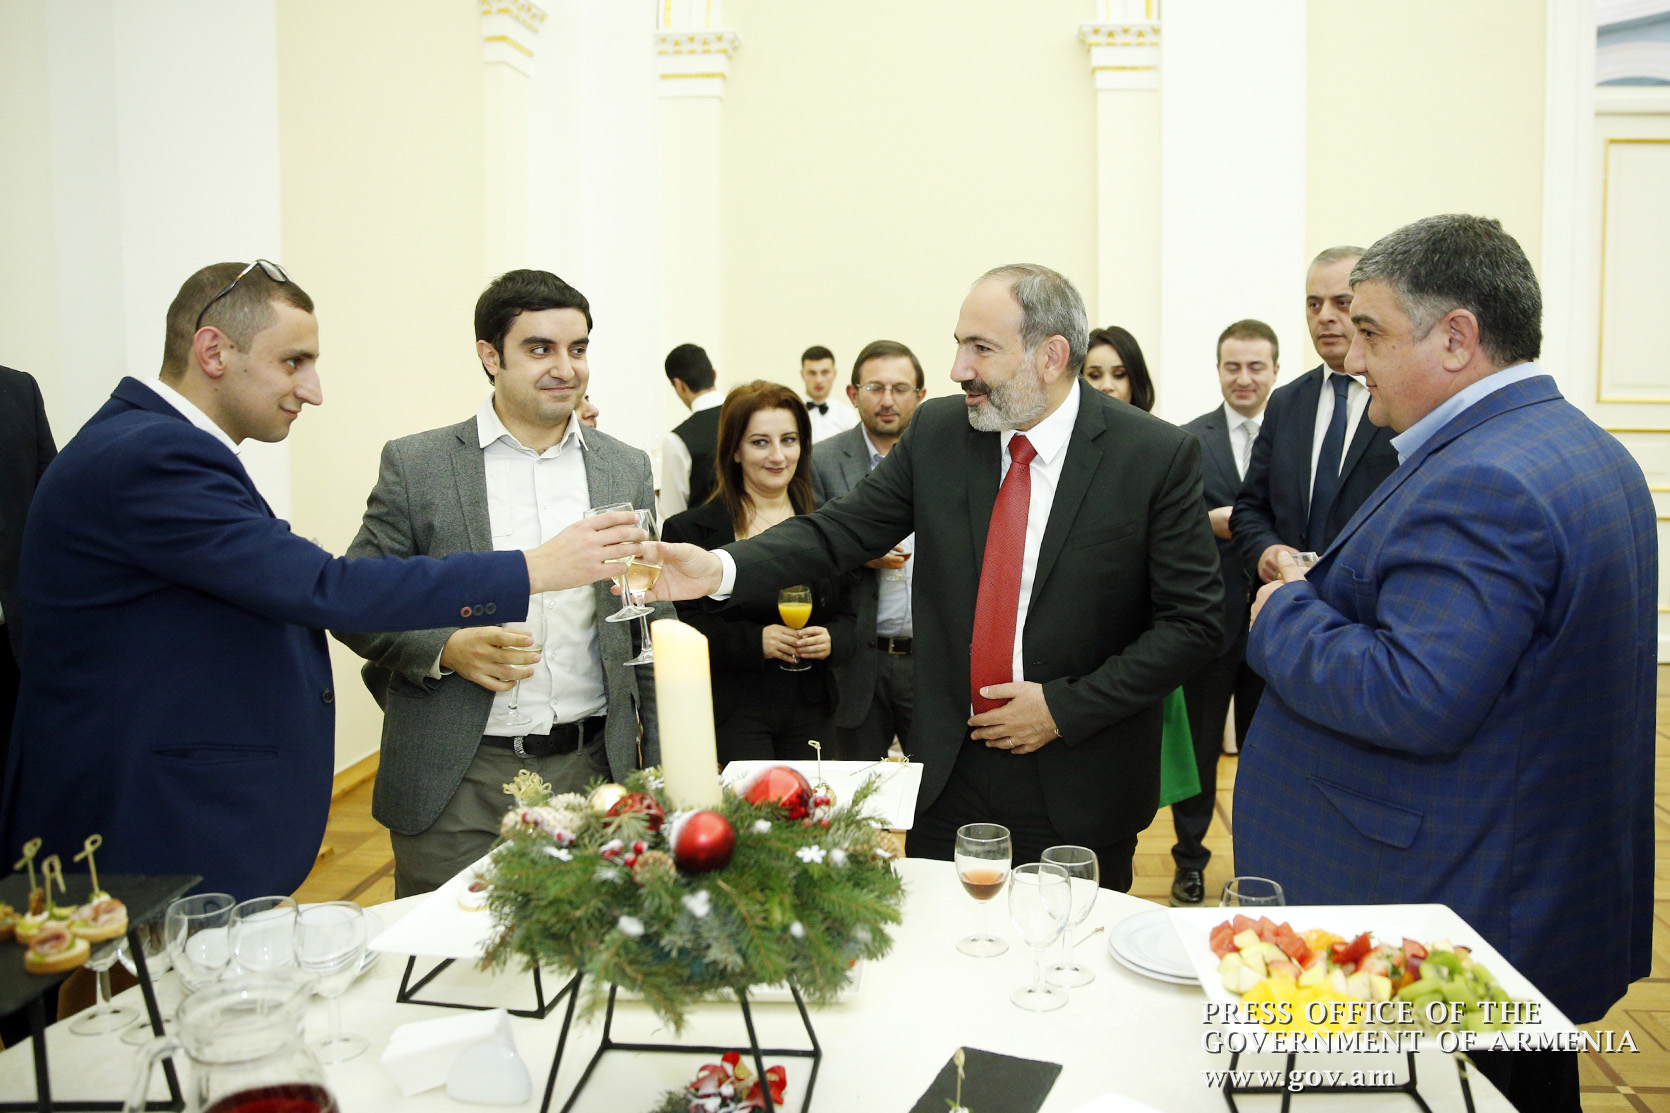 Pashinyan and the press